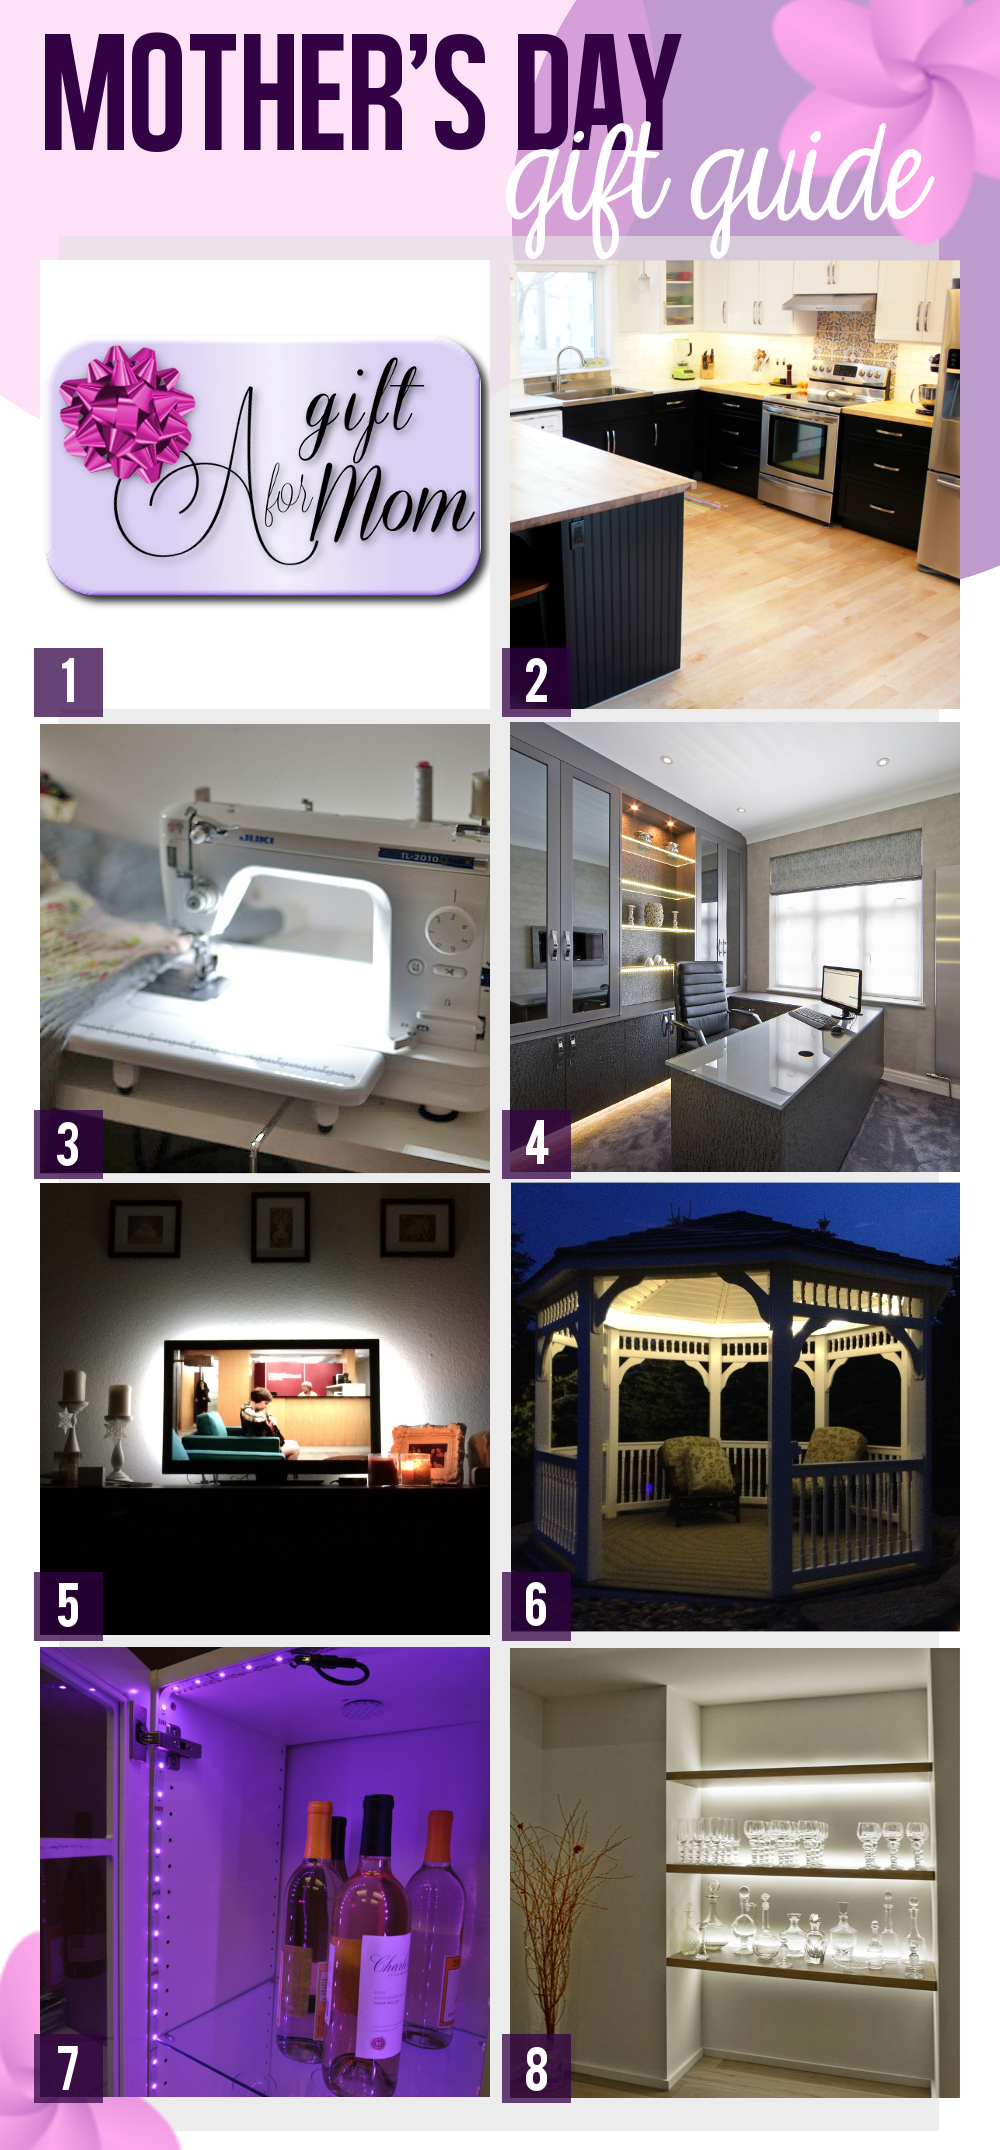 LED Lighting Ideas for Mother's Day - Your Mom Deserves Something Special